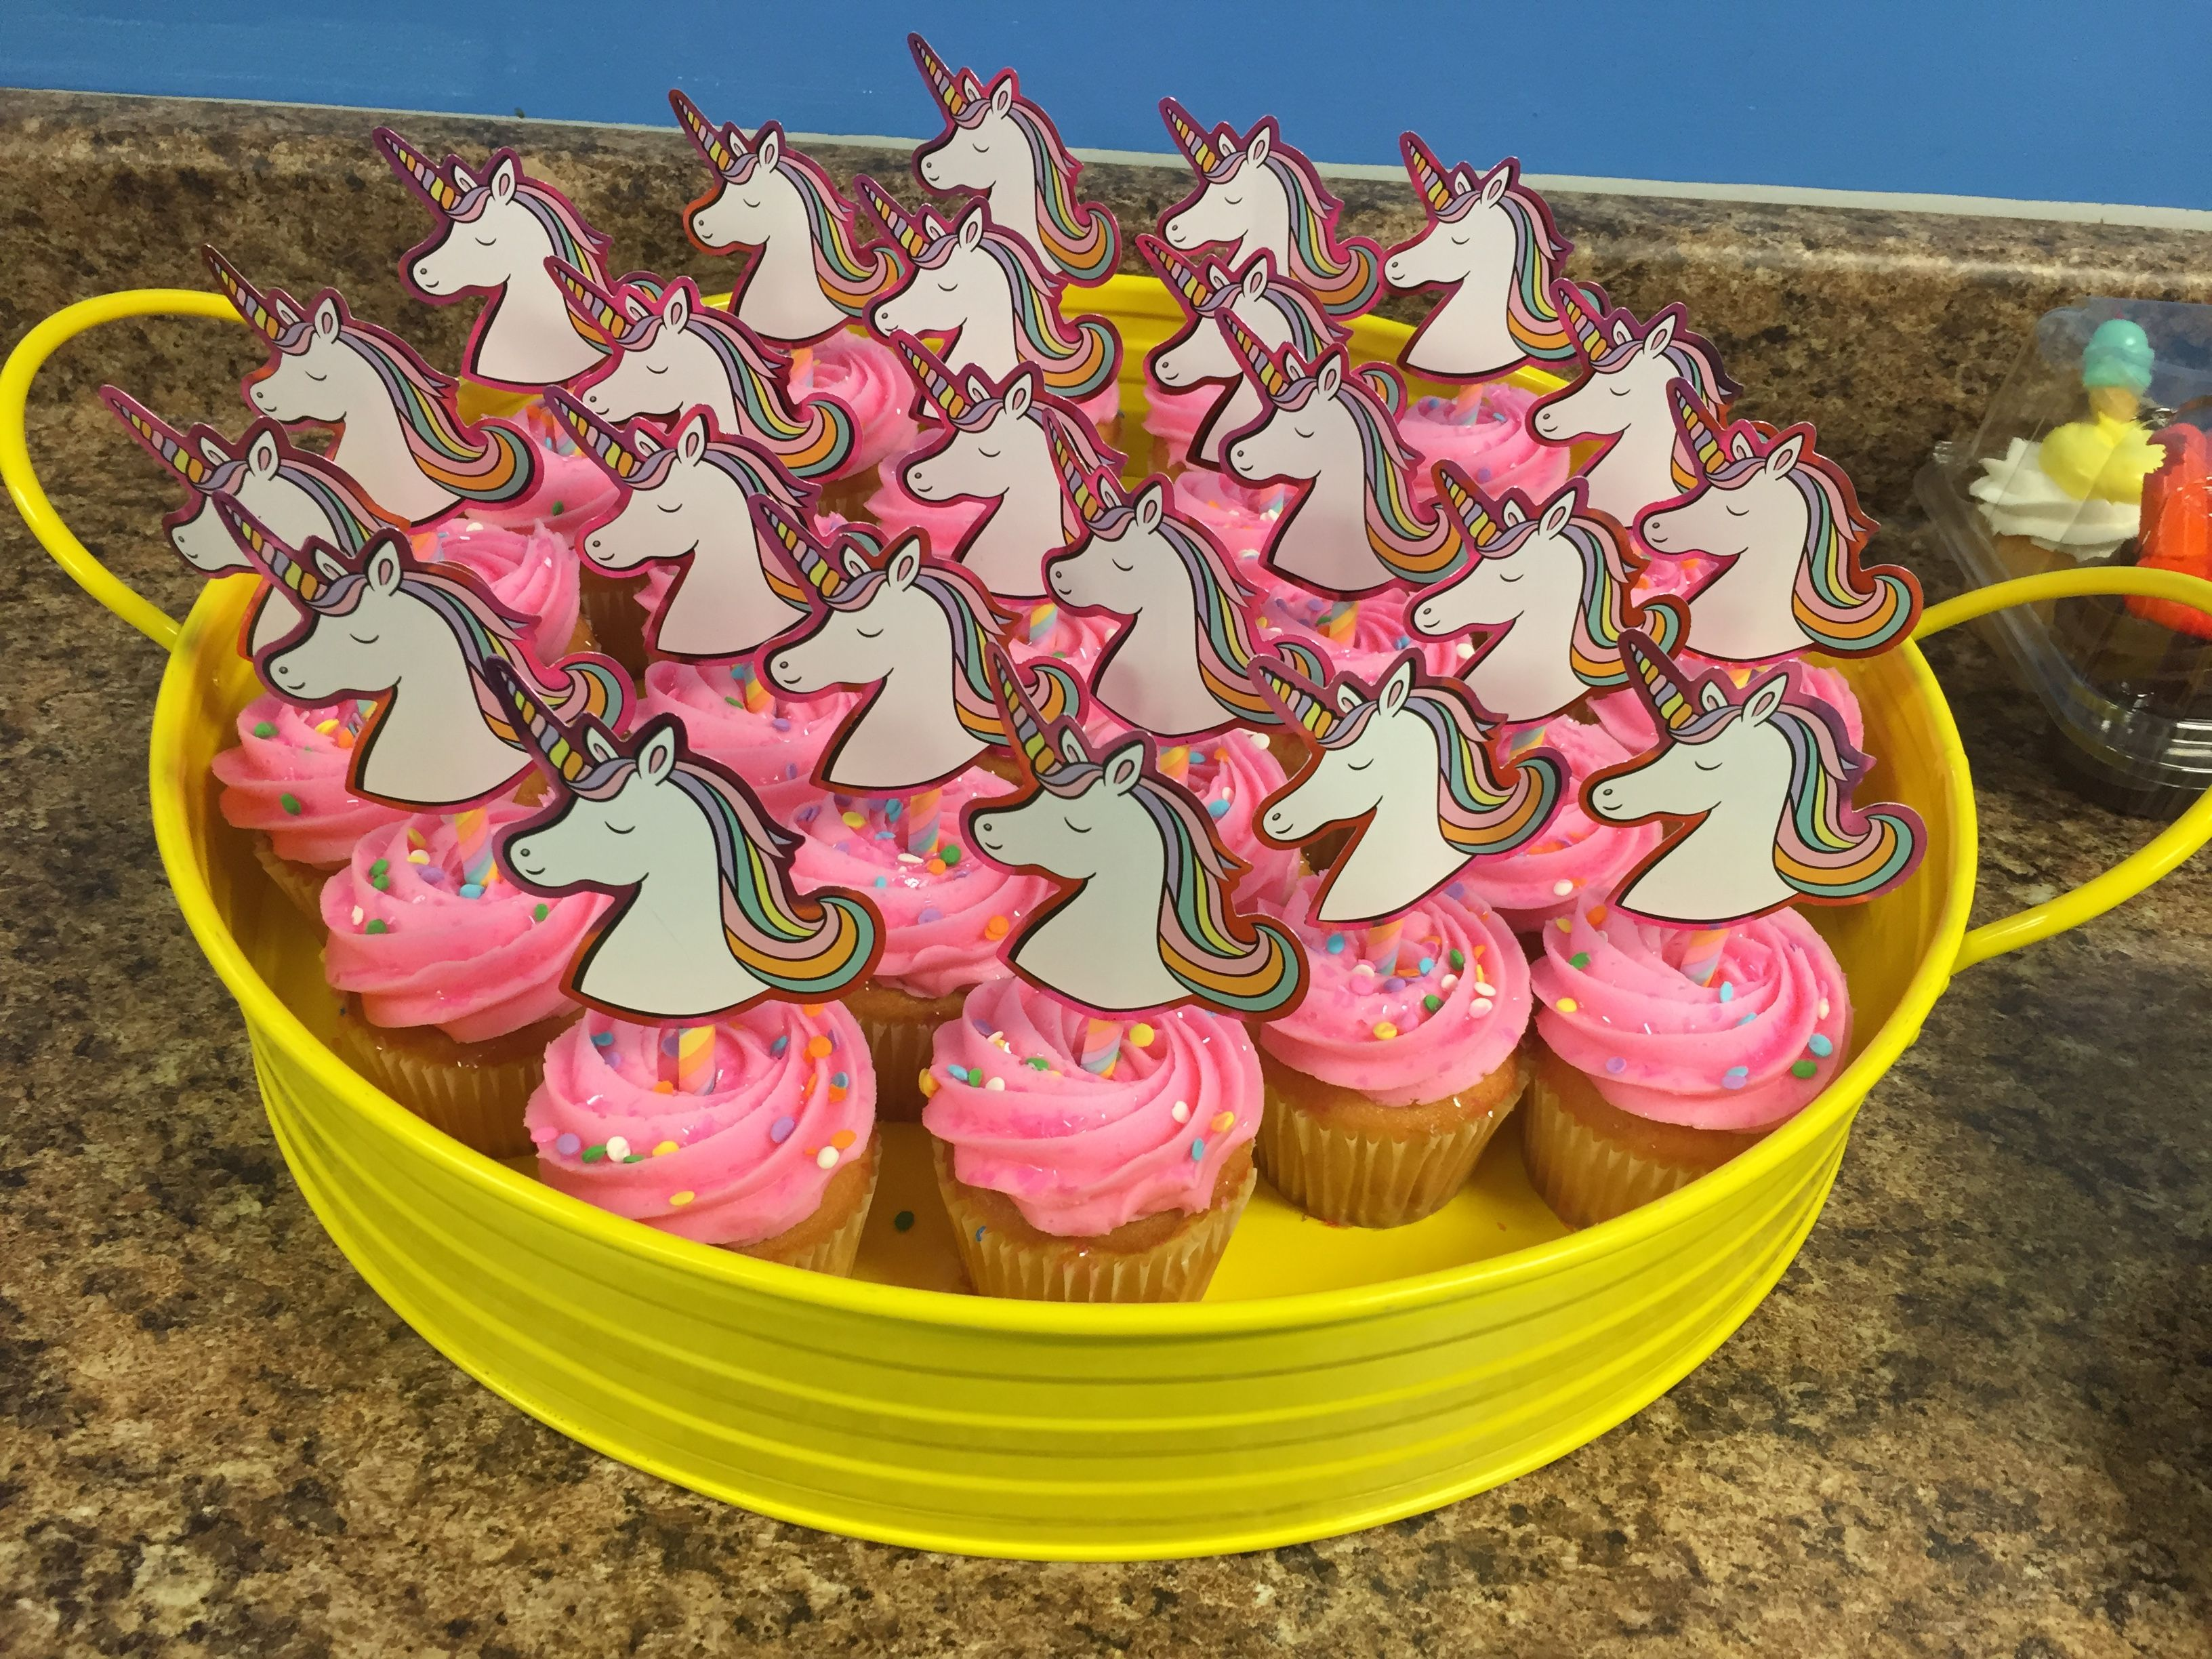 Unicorn Cupcakes From Target Trimmed The Cute Straws And Used Them As A Cupcake Topper